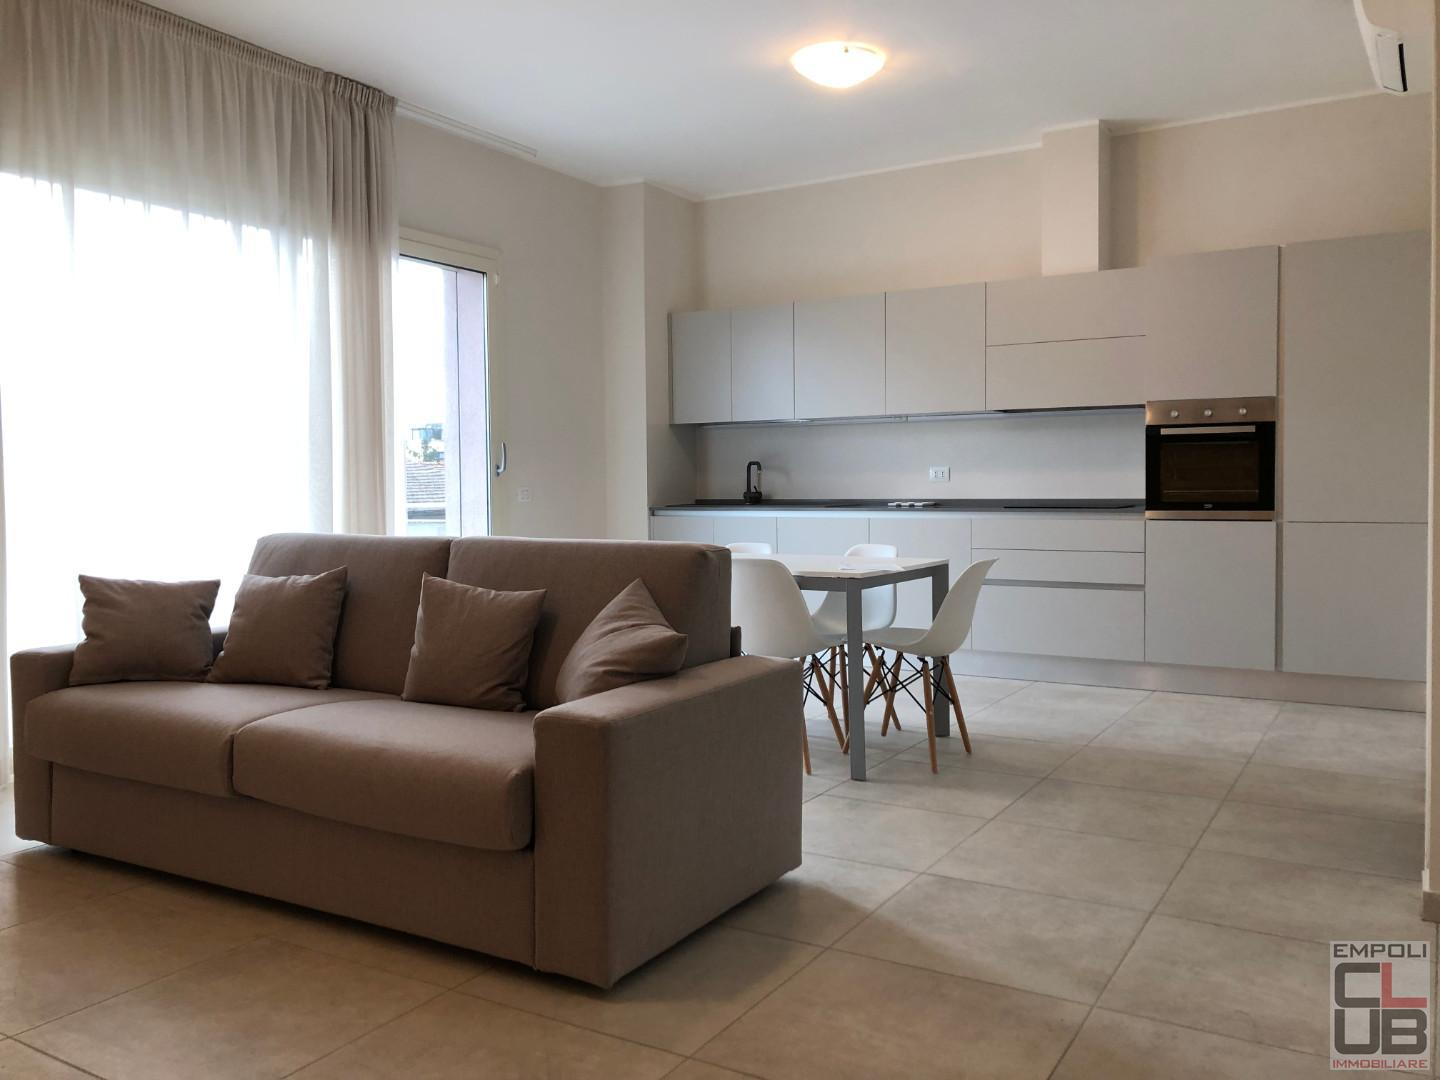 Attico for rent in Empoli (FI)